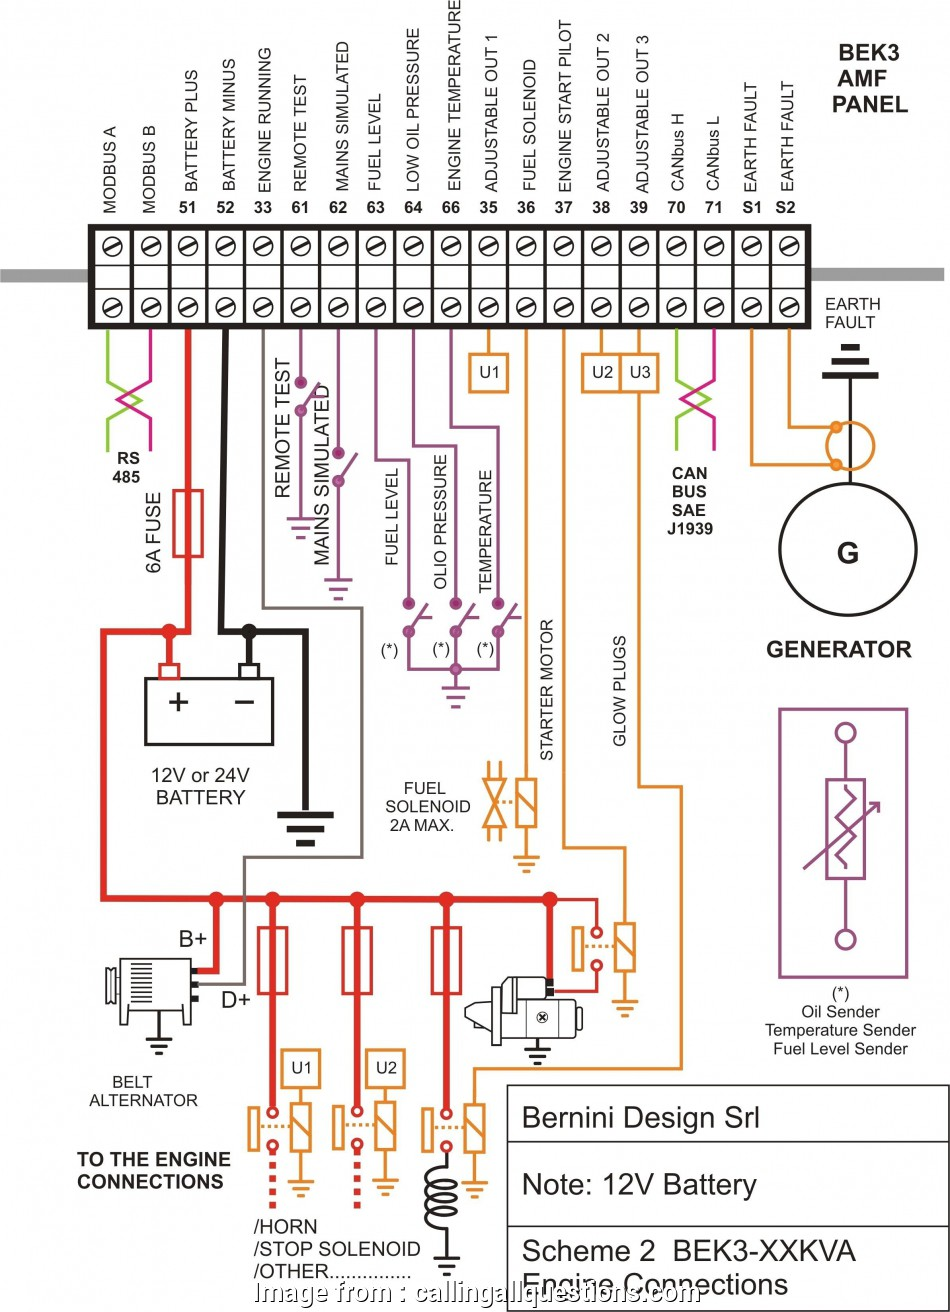 industrial electrical panel wiring Control Panel Wiring Diagram, Best Of Industrial Wiring Diagram Electrical Wiring Diagram Symbols 10 Simple Industrial Electrical Panel Wiring Galleries